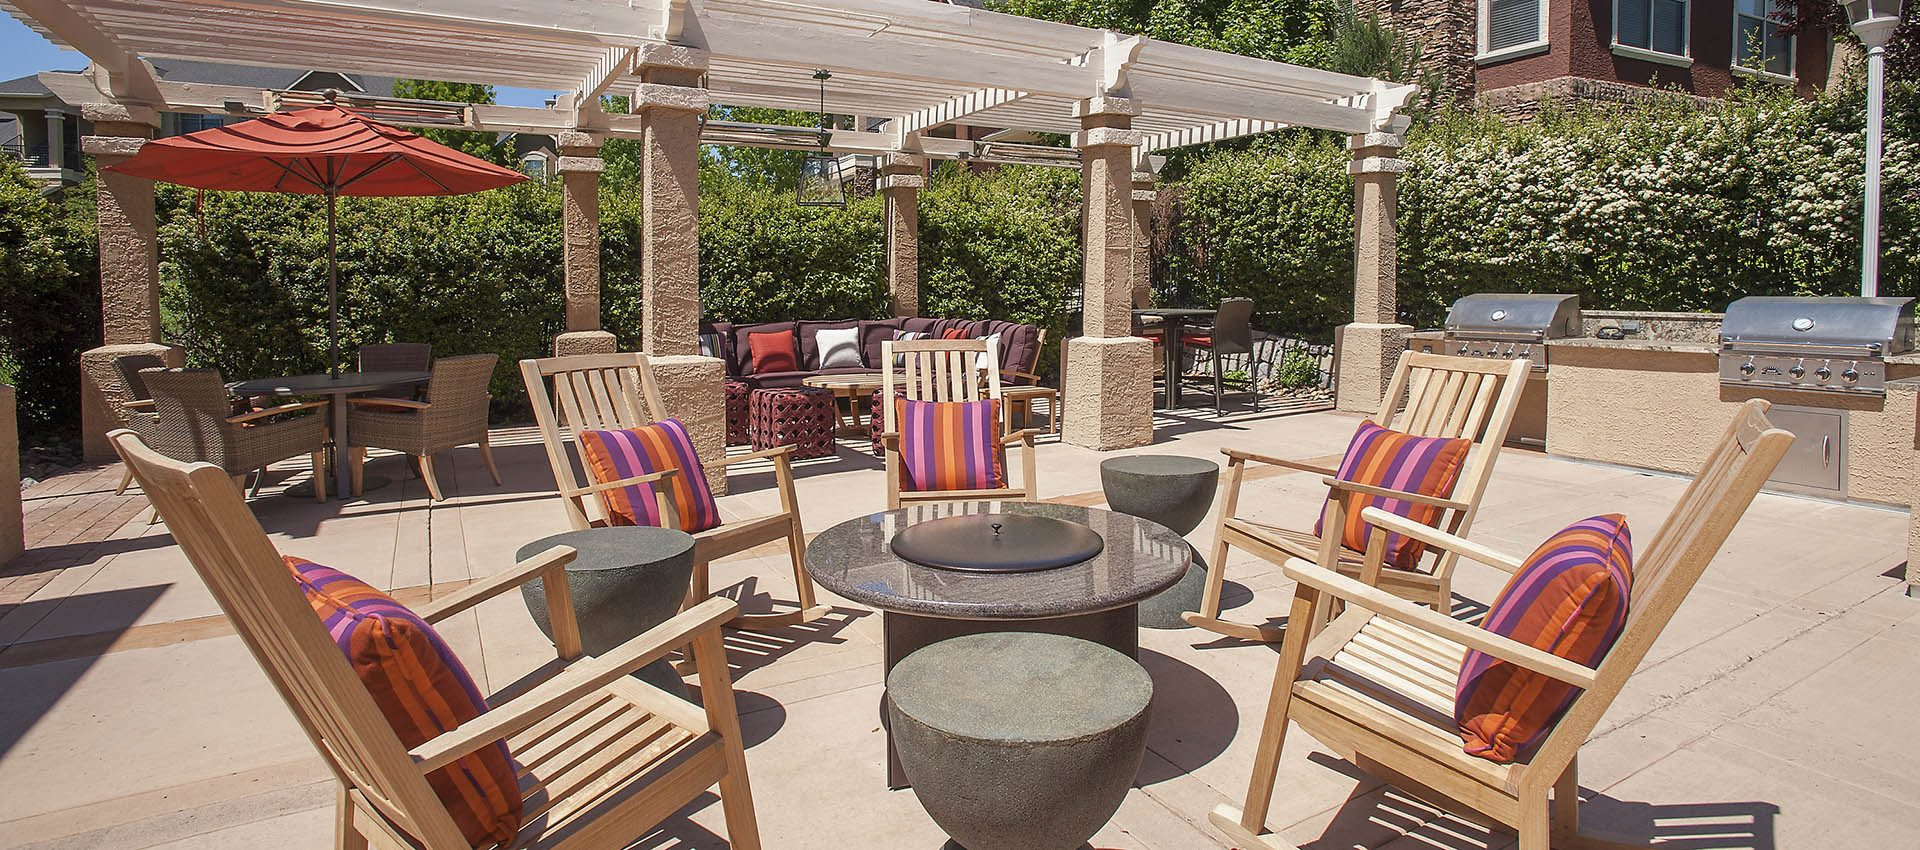 outdoor fire pit at The Vintage at South Meadows Condominium Rentals in Reno